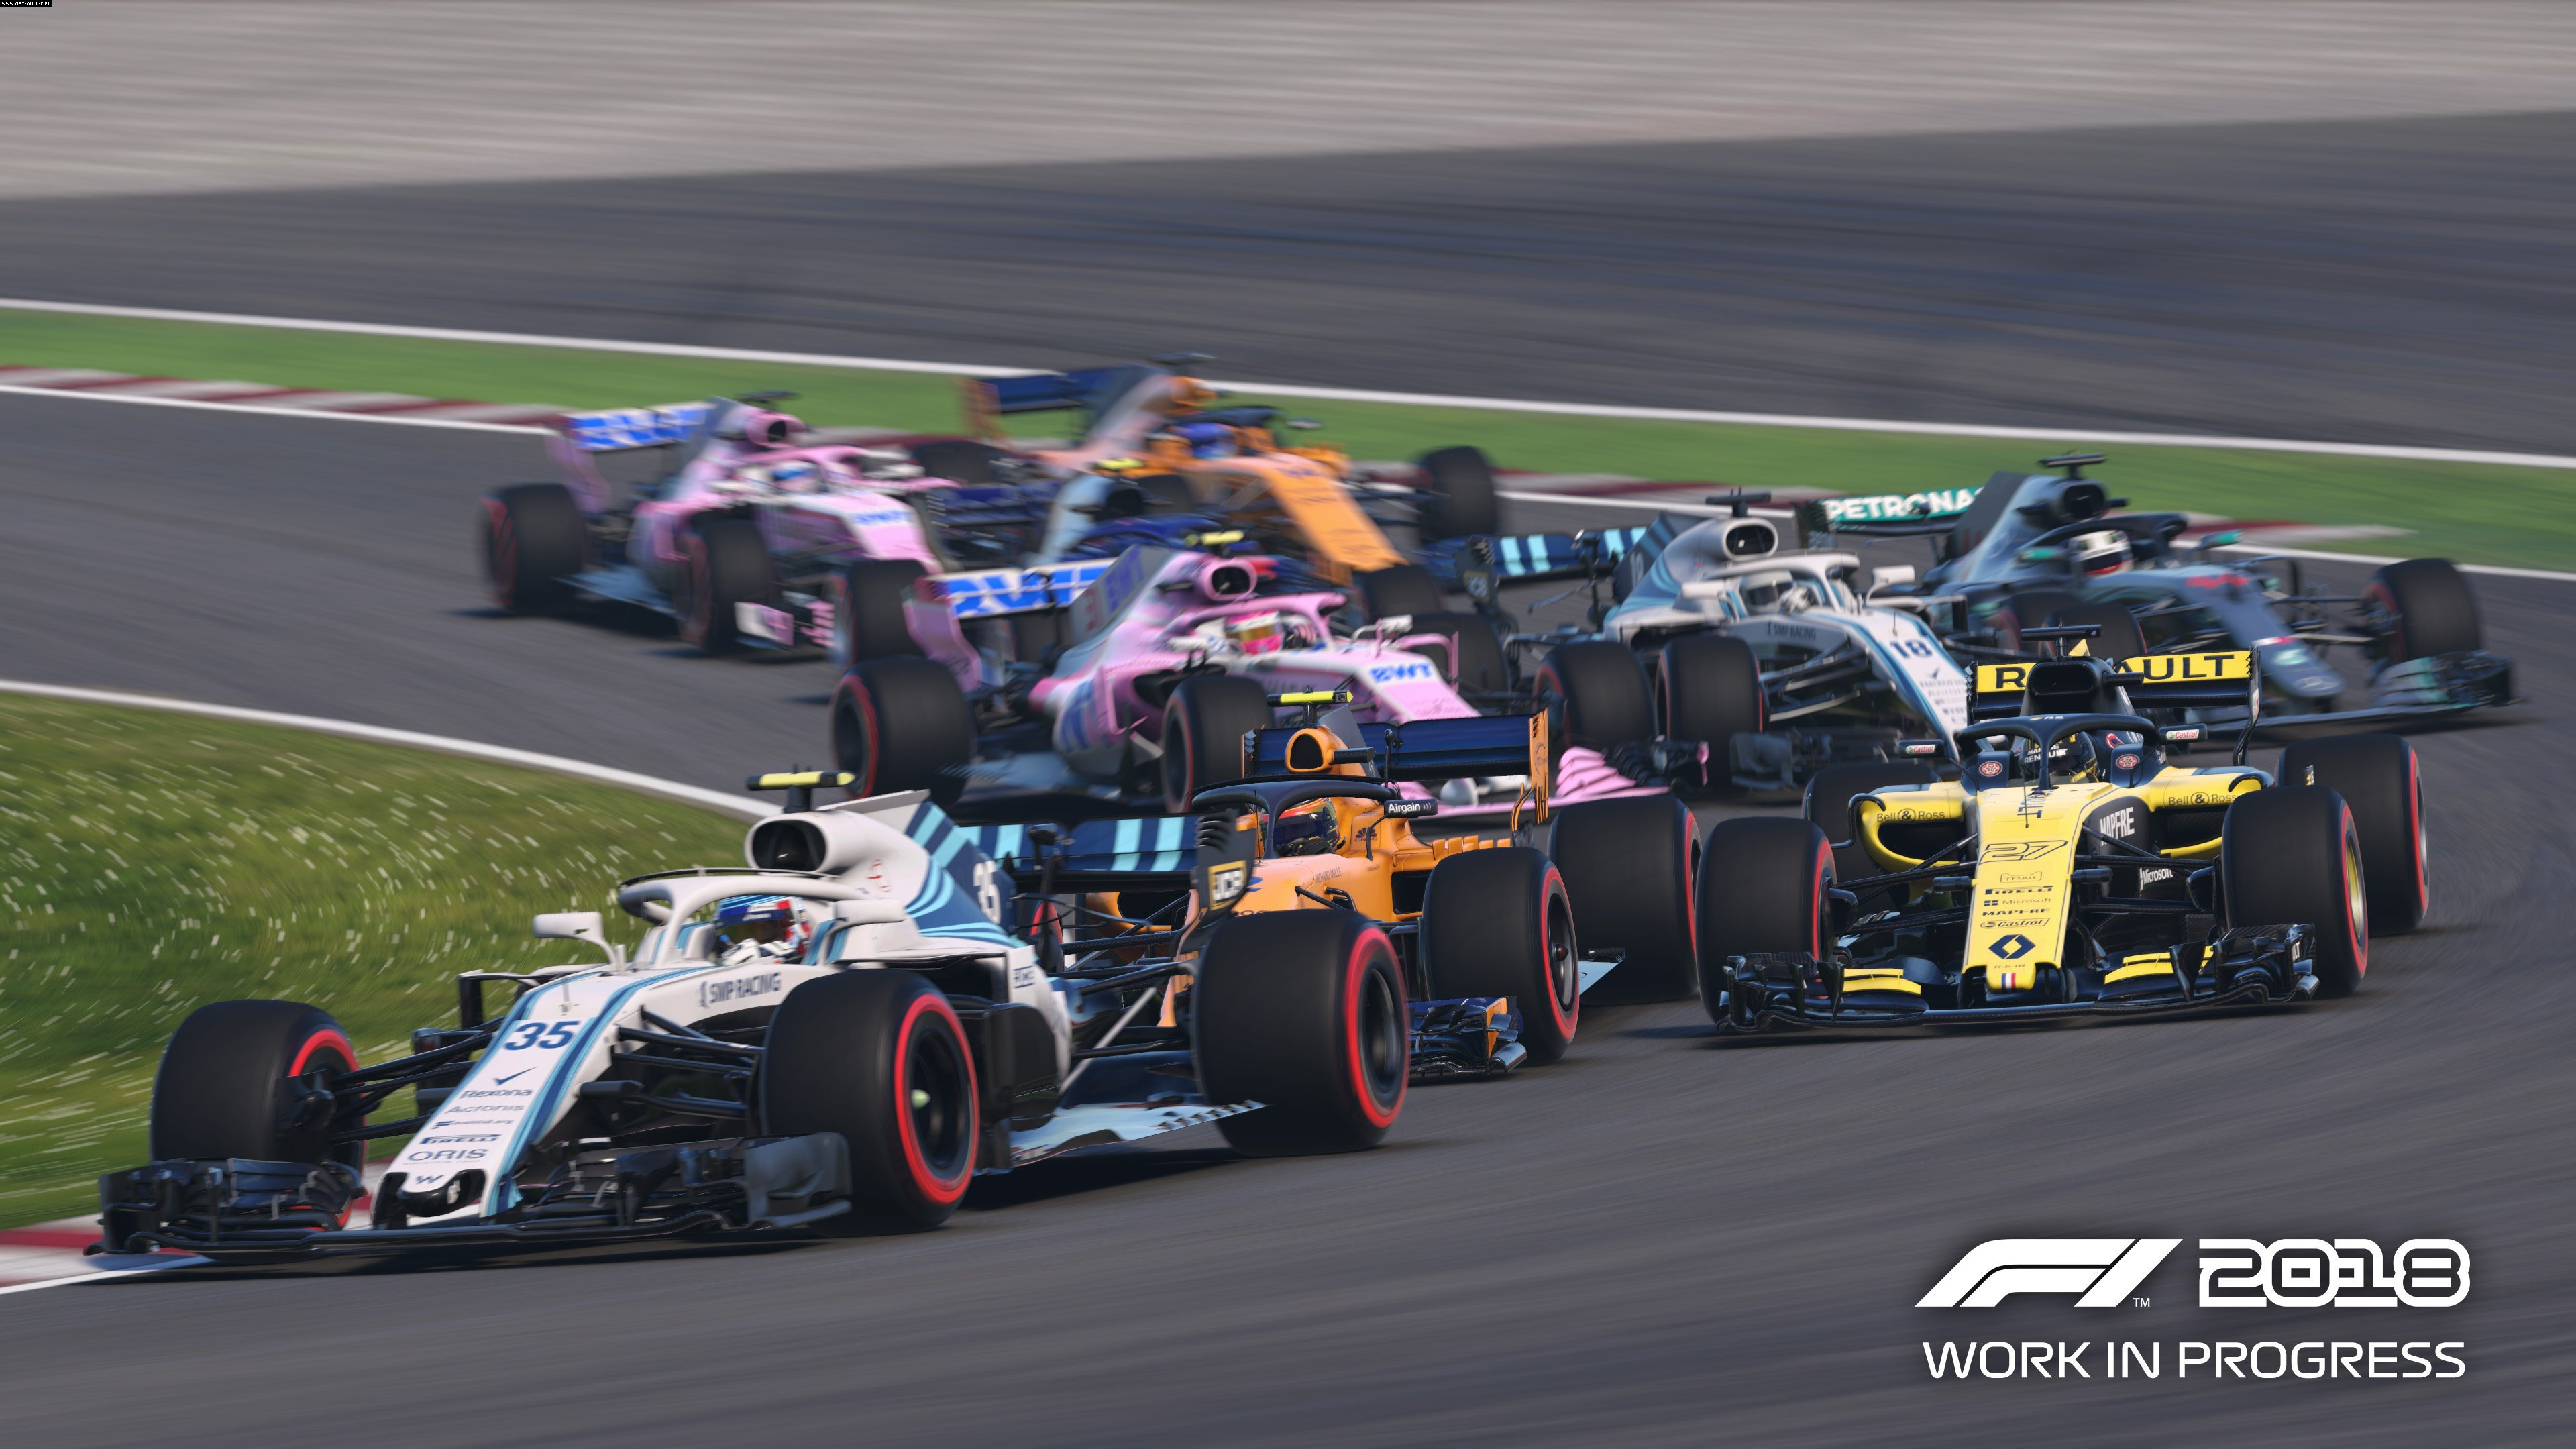 F1 2018 PC, PS4, XONE Games Image 10/38, Codemasters Software